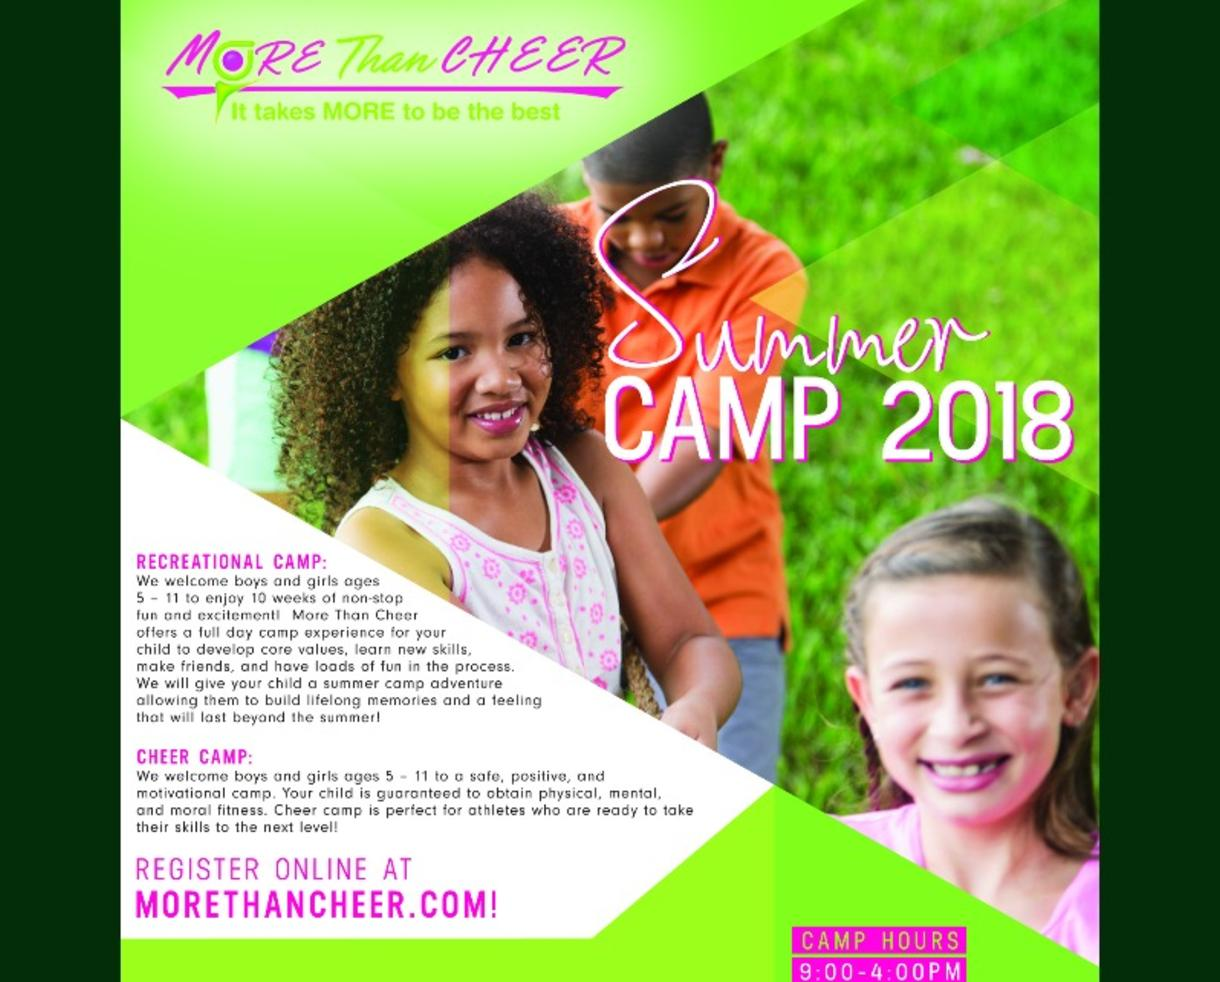 More Than Cheer Cheerleading Camp